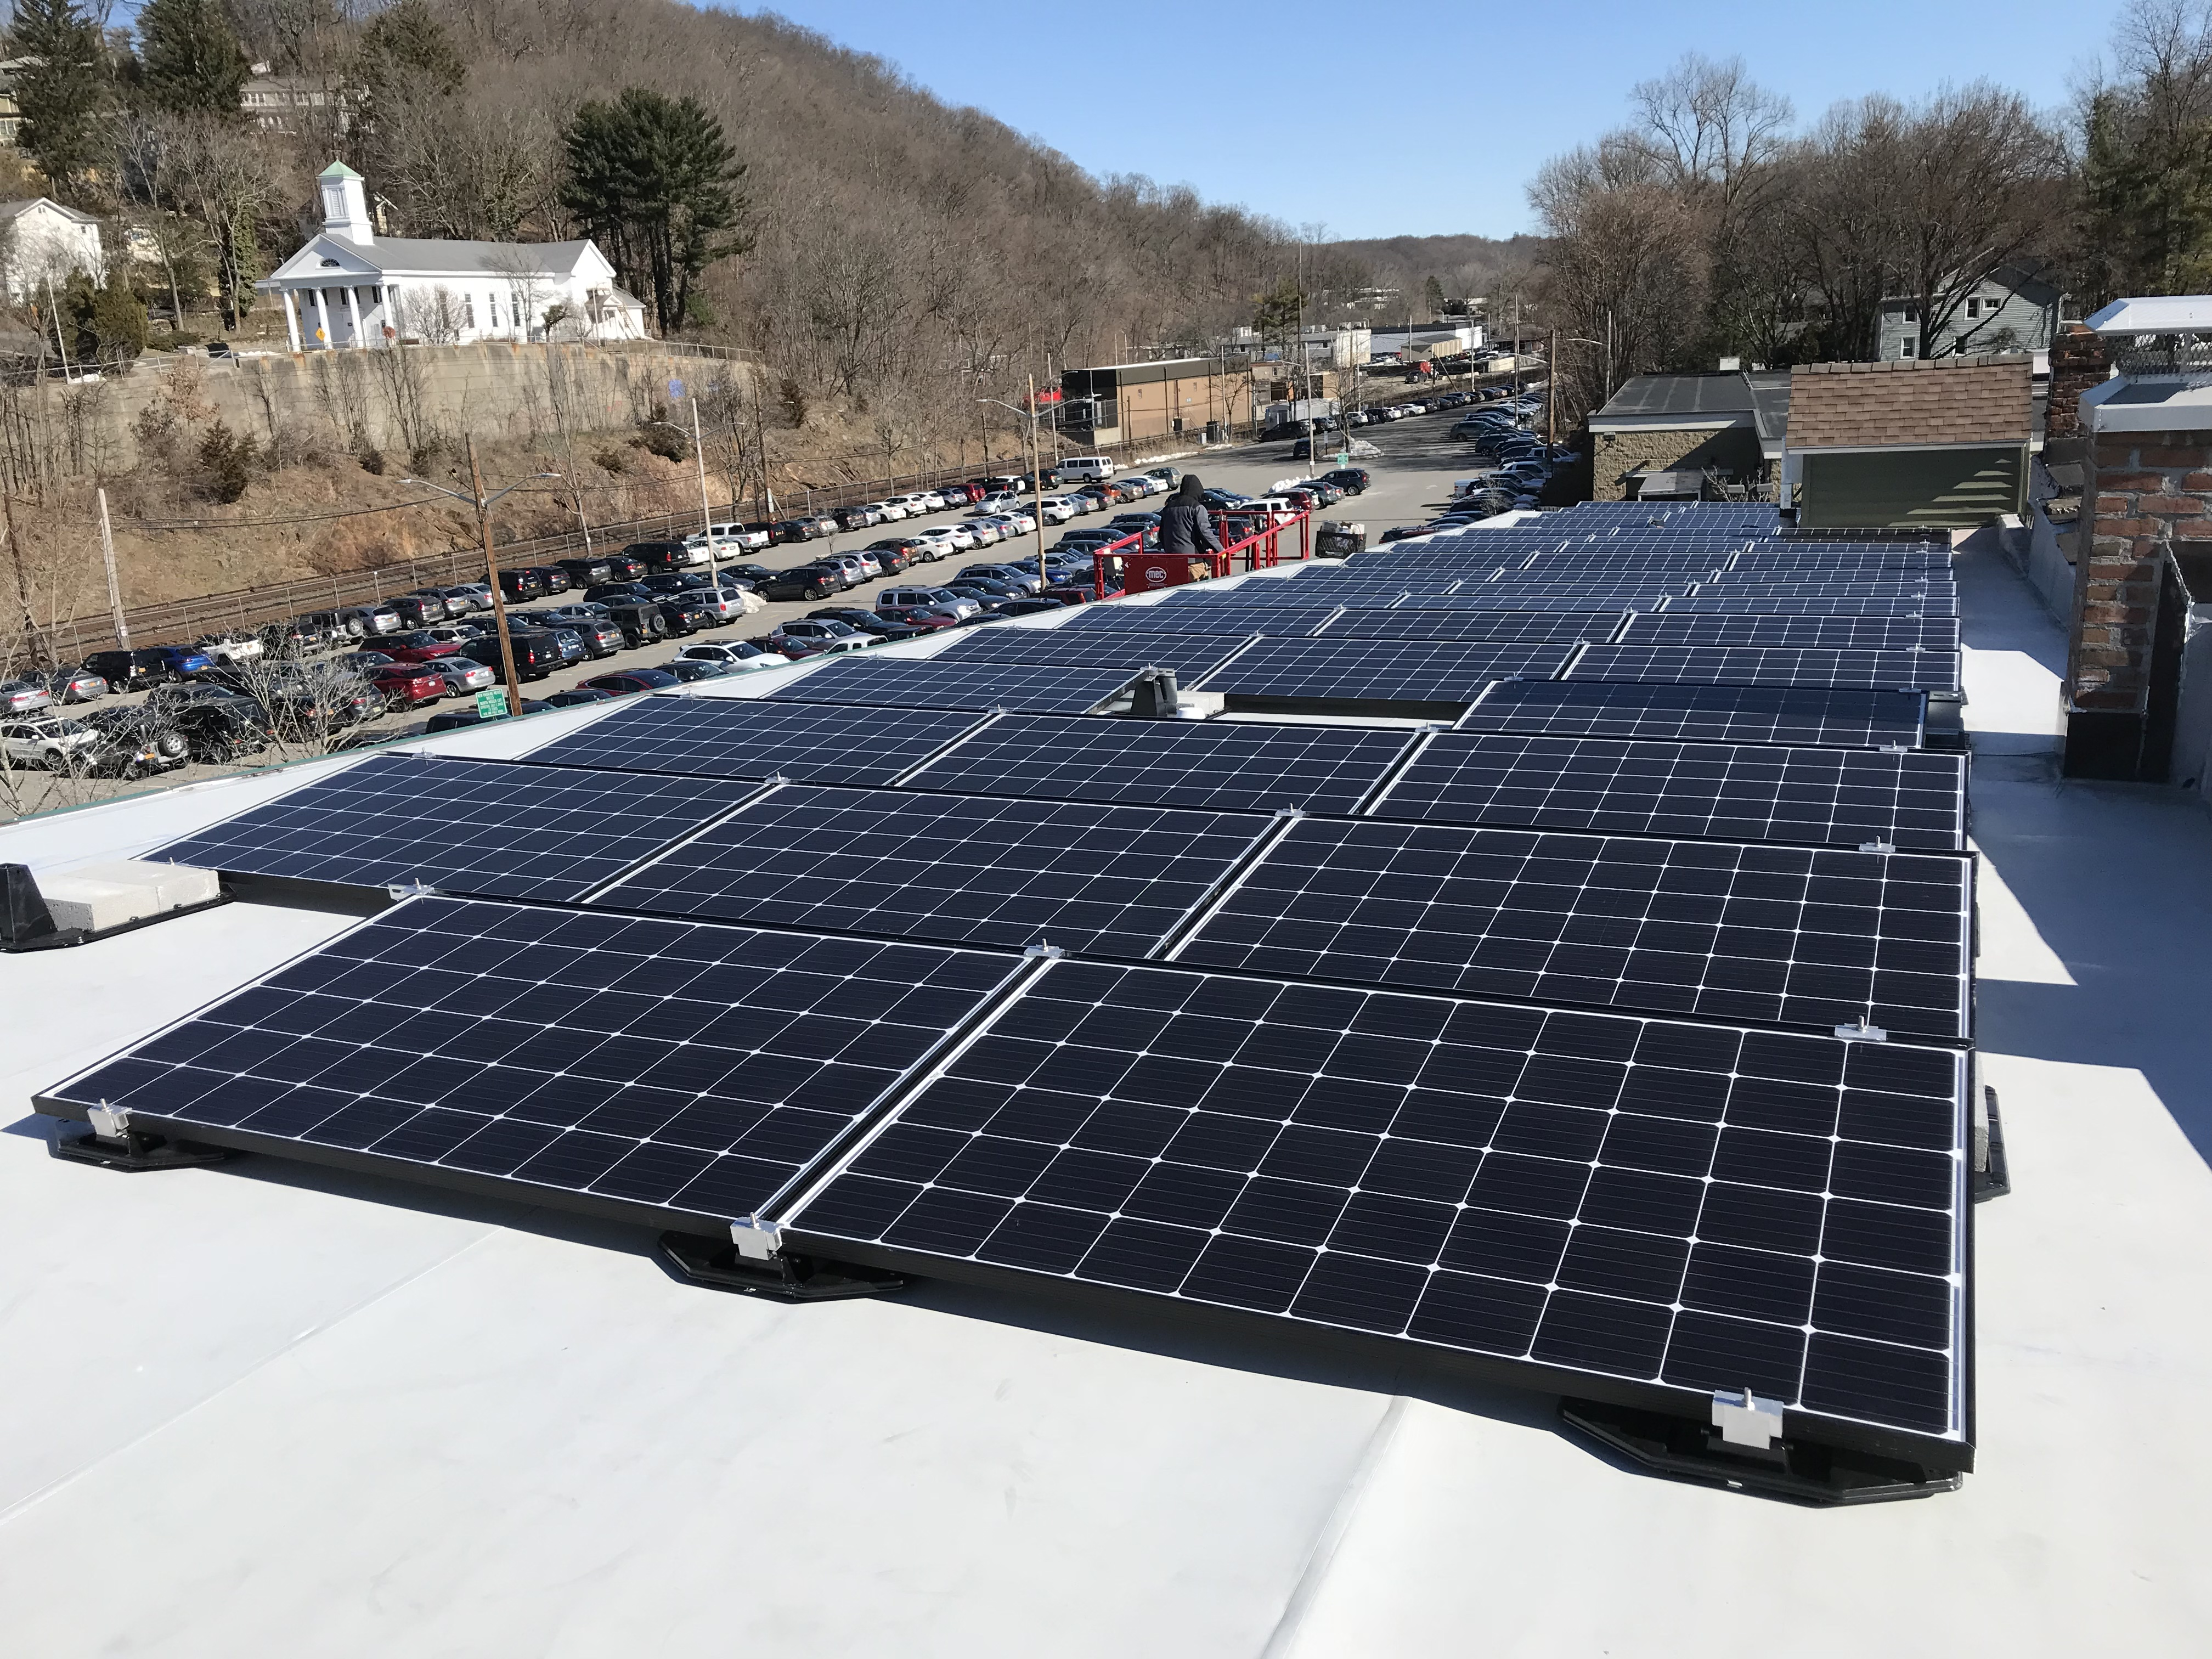 Solar For Low Pitch Roof With Tpo Membrane Croton Energy Group Inc